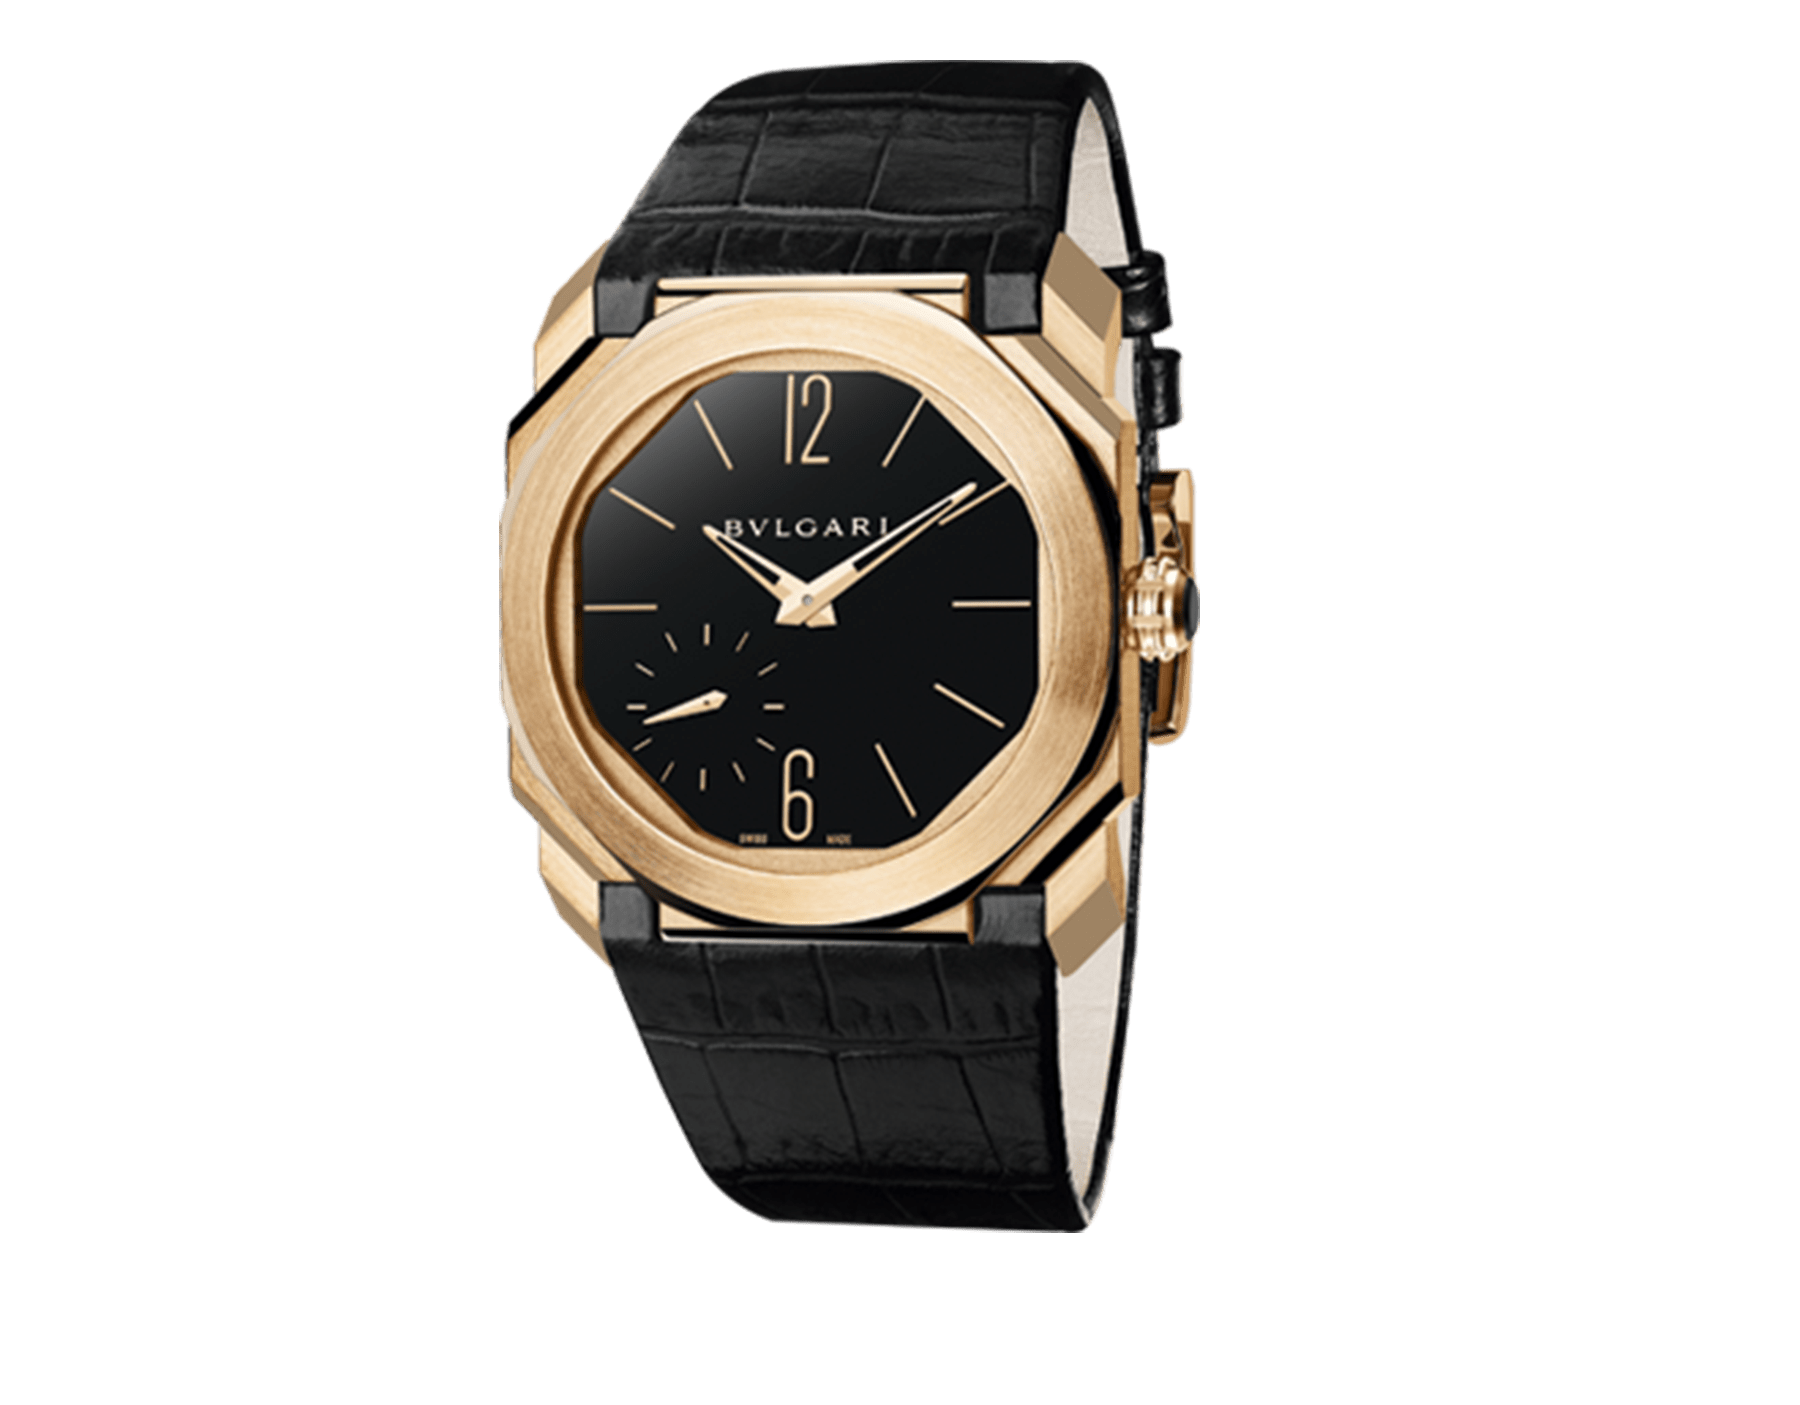 Octo Finissimo watch with extra thin mechanical manufacture movement, manual winding, small seconds and back-side power reserve indication, 18 kt rose gold case, black lacquered dial and black alligator bracelet. 102371 image 1